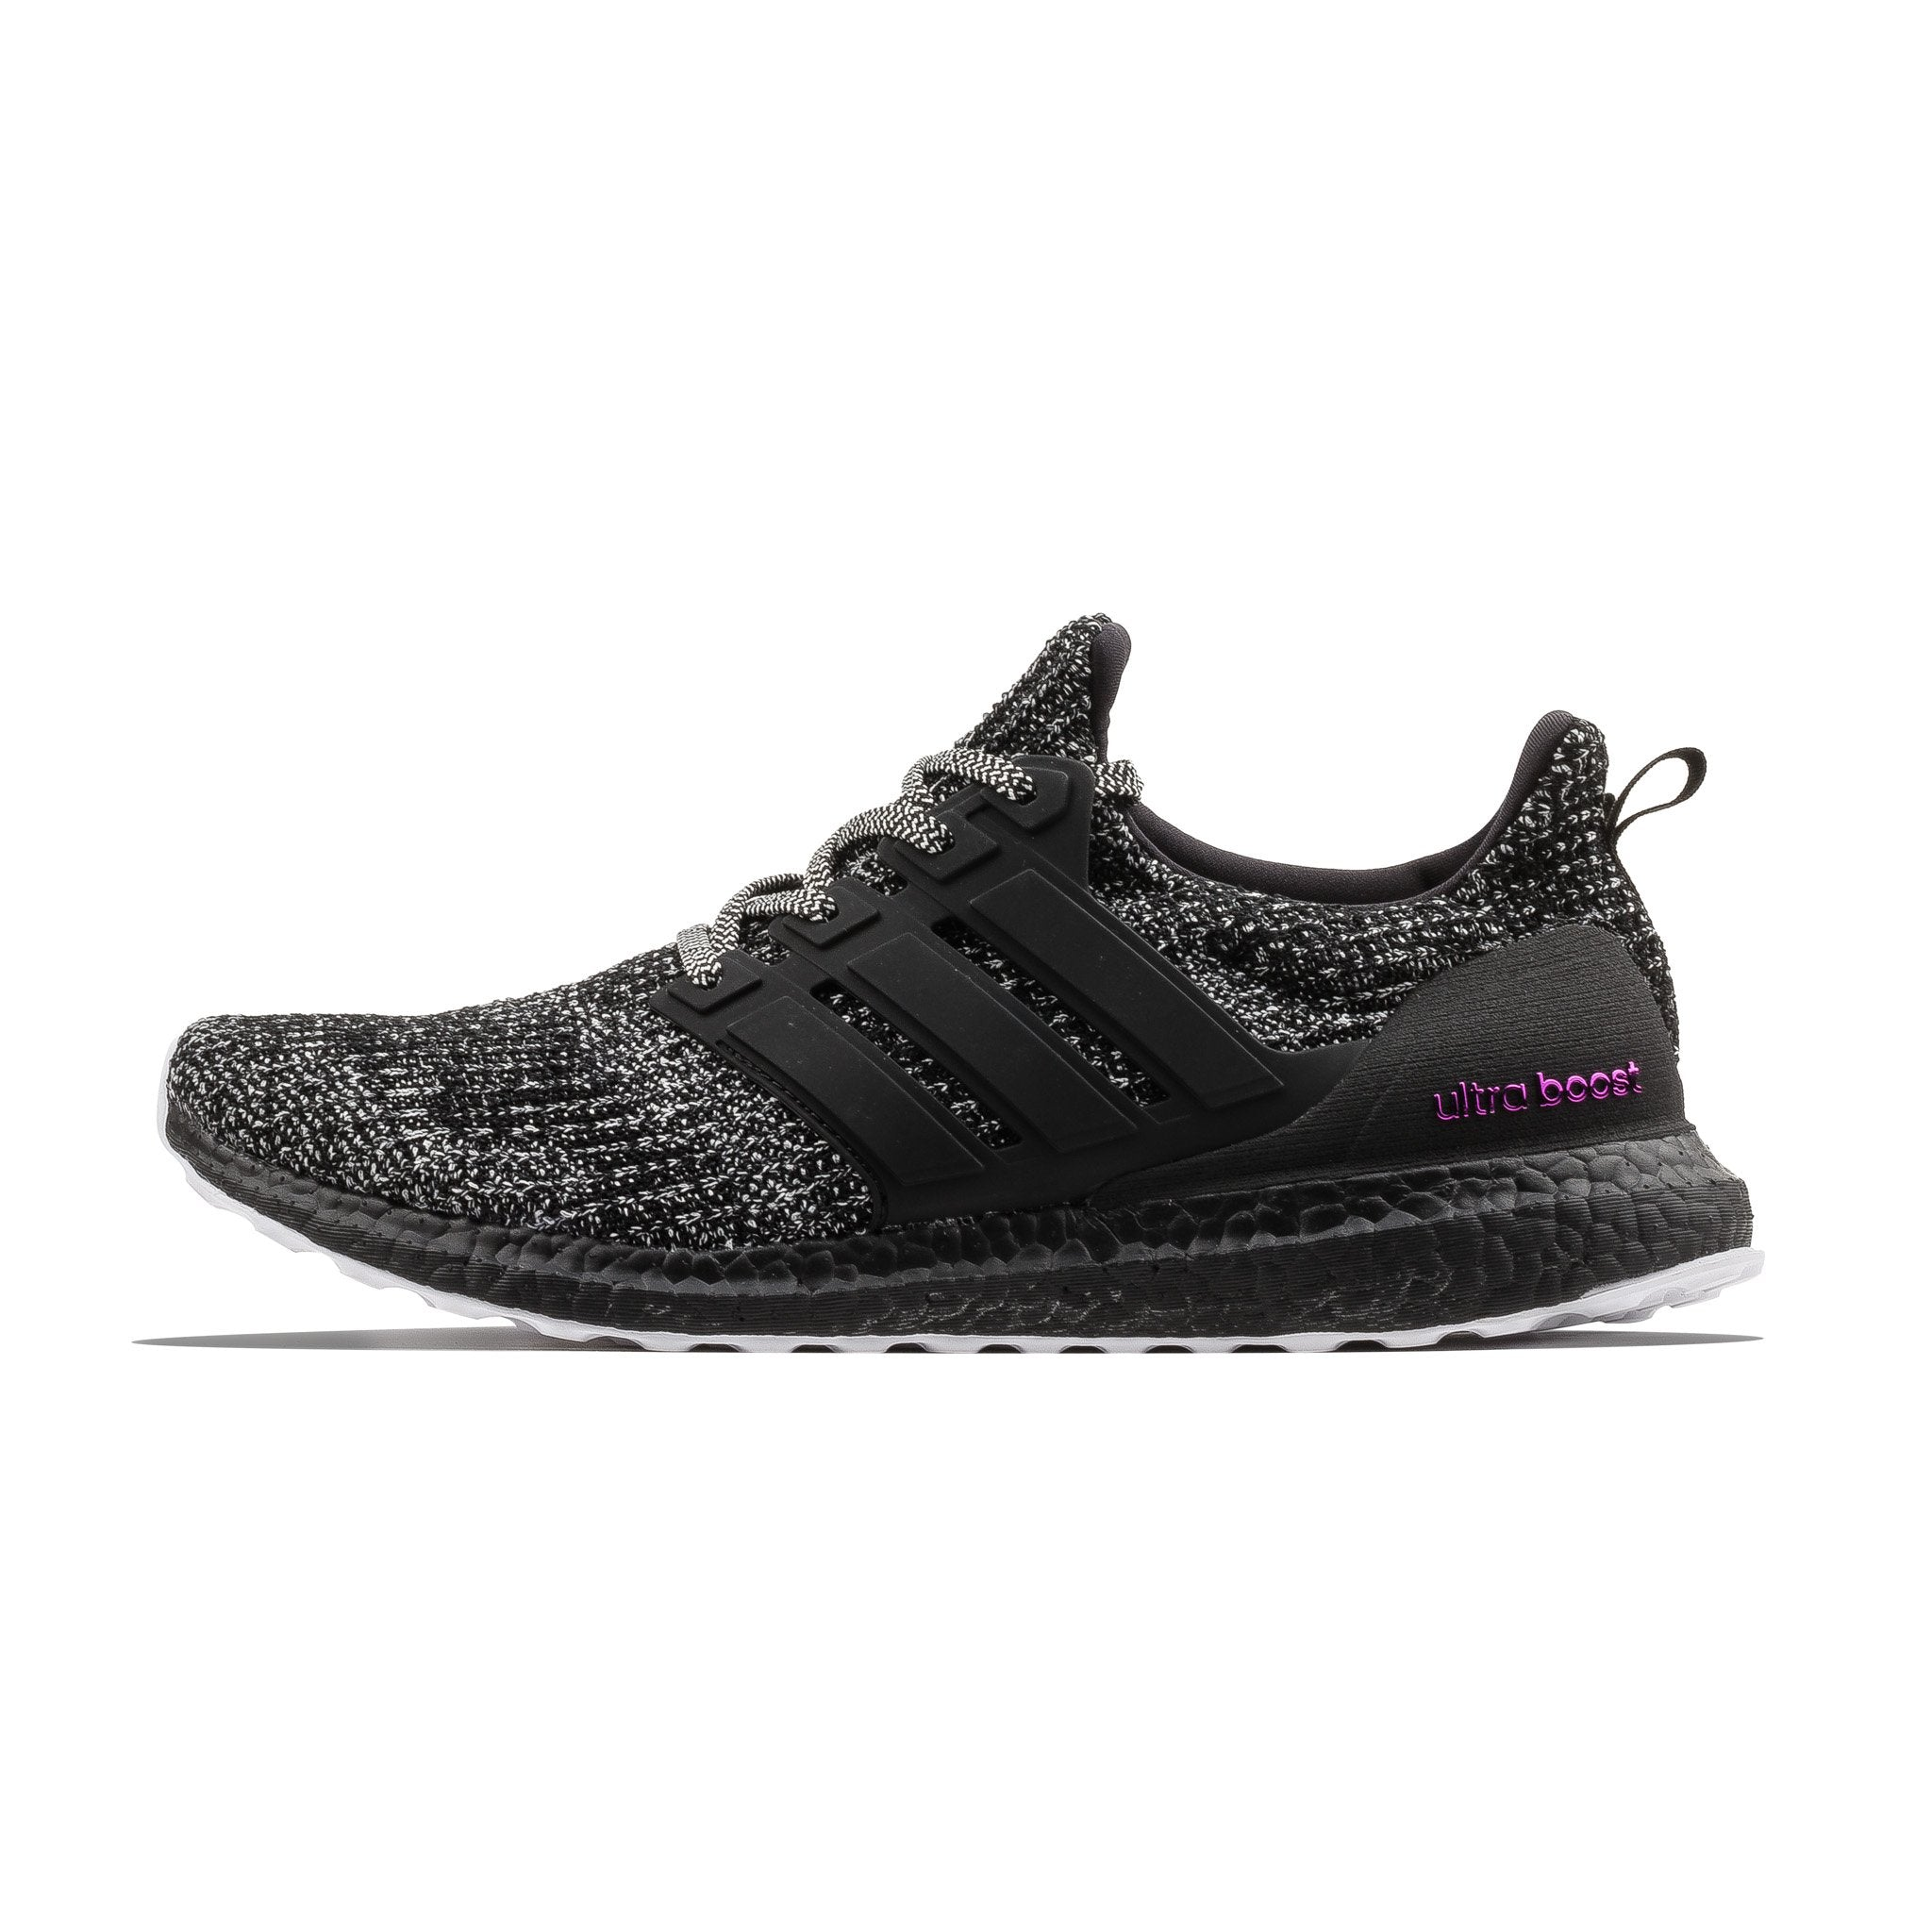 Adidas Ultraboost BC0247 Breast Cancer Awareness